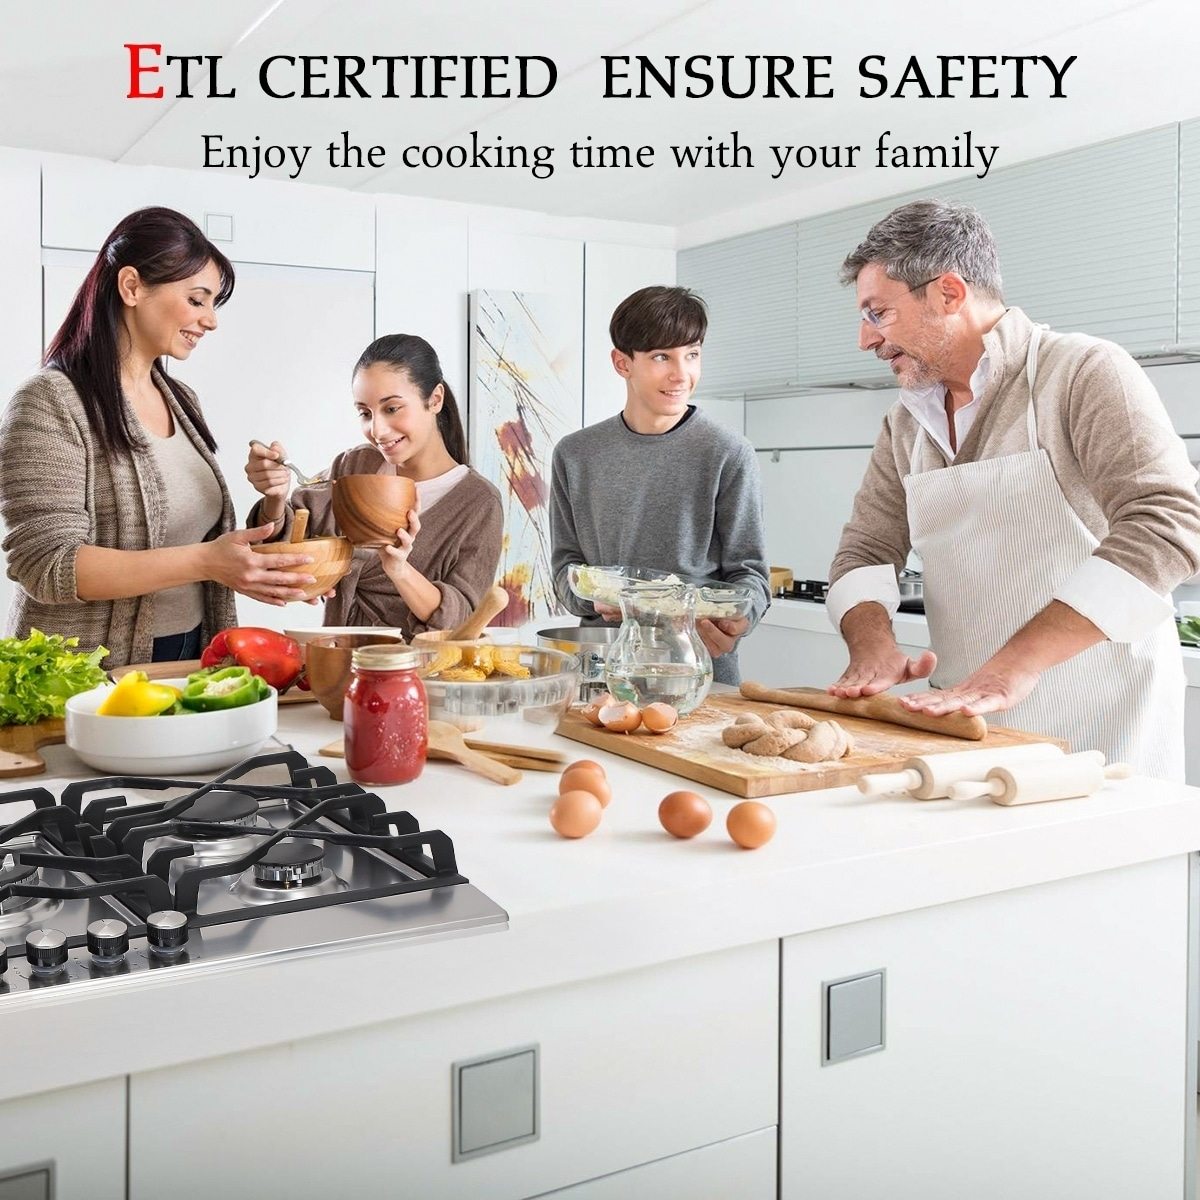 Thermocouple Protection /& Easy To Clean ETL Safety Certified Gas Cooktop Tempered Glass LPG Natural Gas Cooktop Gas Stove Top with 5 Sealed Burners Gasland chef GH90BF 36 Built-in Gas Stove Top